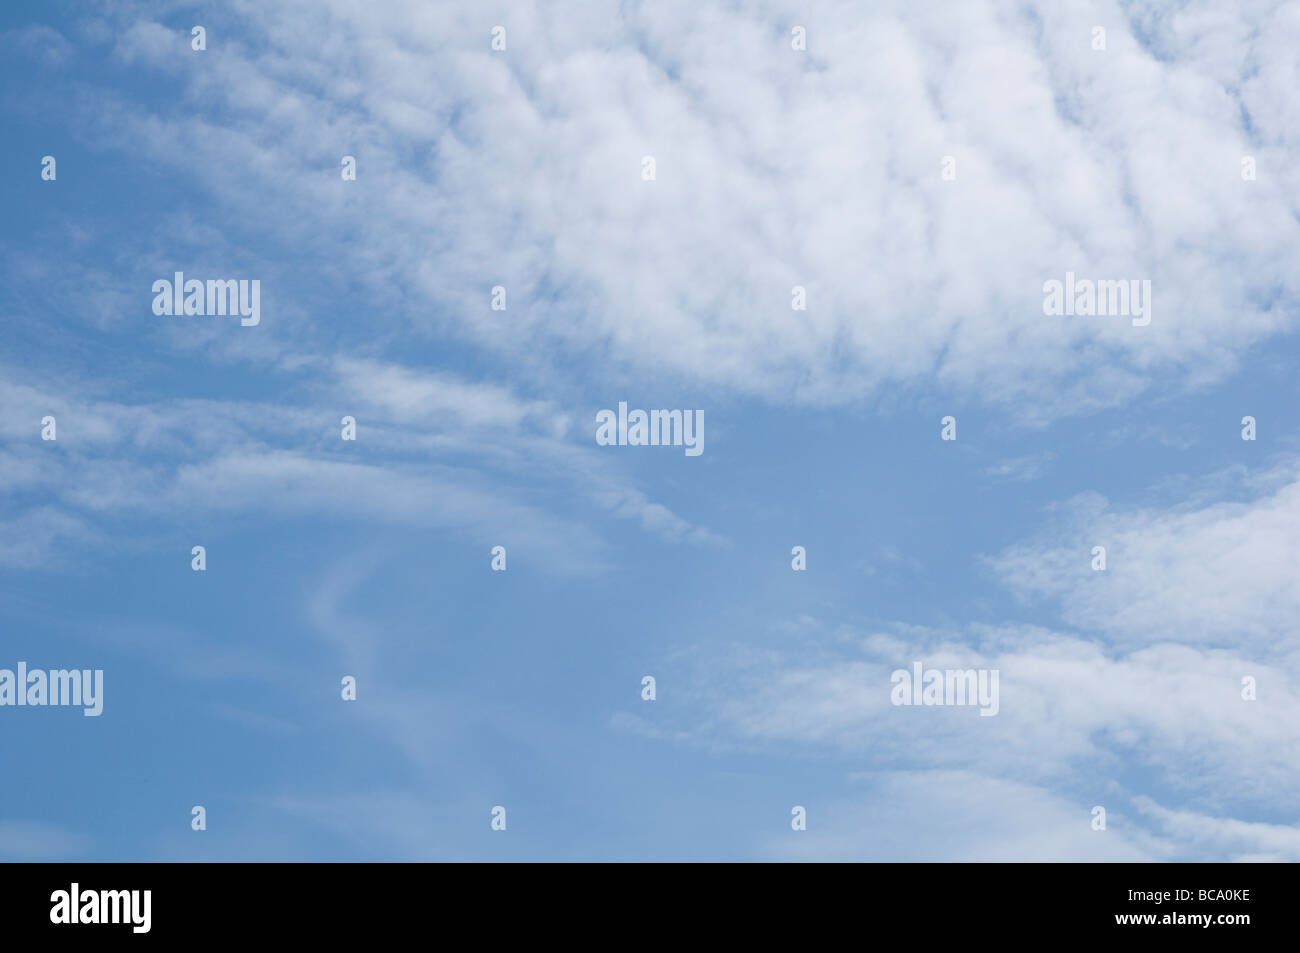 Soft thin fluffy clouds developing into a blanket. - Stock Image